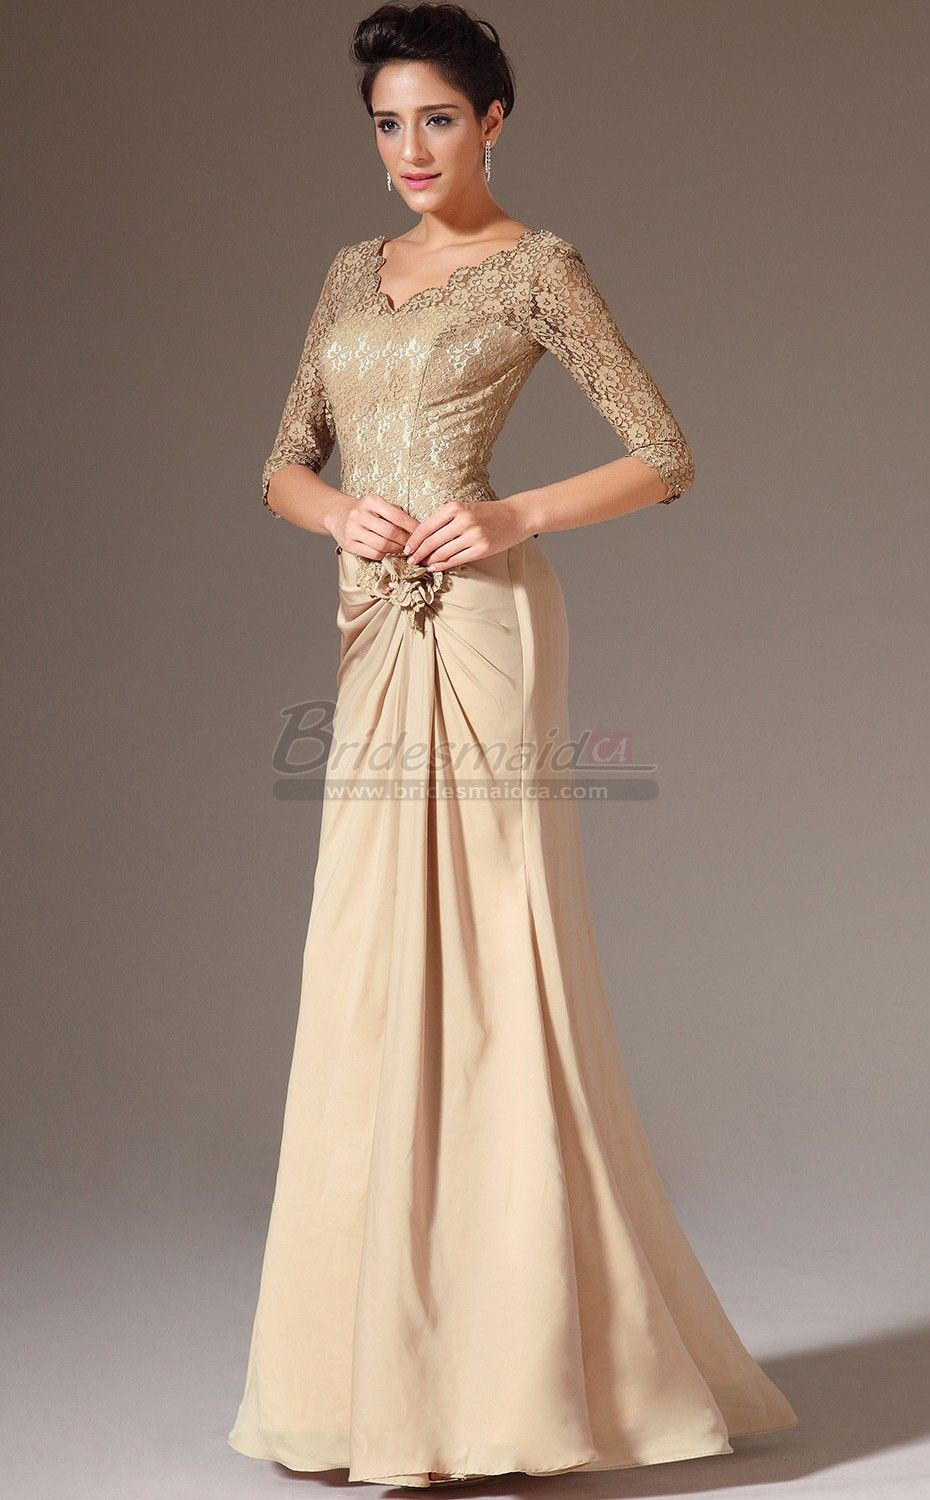 Gold v neck long chiffon and lace mermaid bridesmaid dress with gold v neck long chiffon and lace mermaid bridesmaid dress with half sleeve jt ca1379 ombrellifo Images